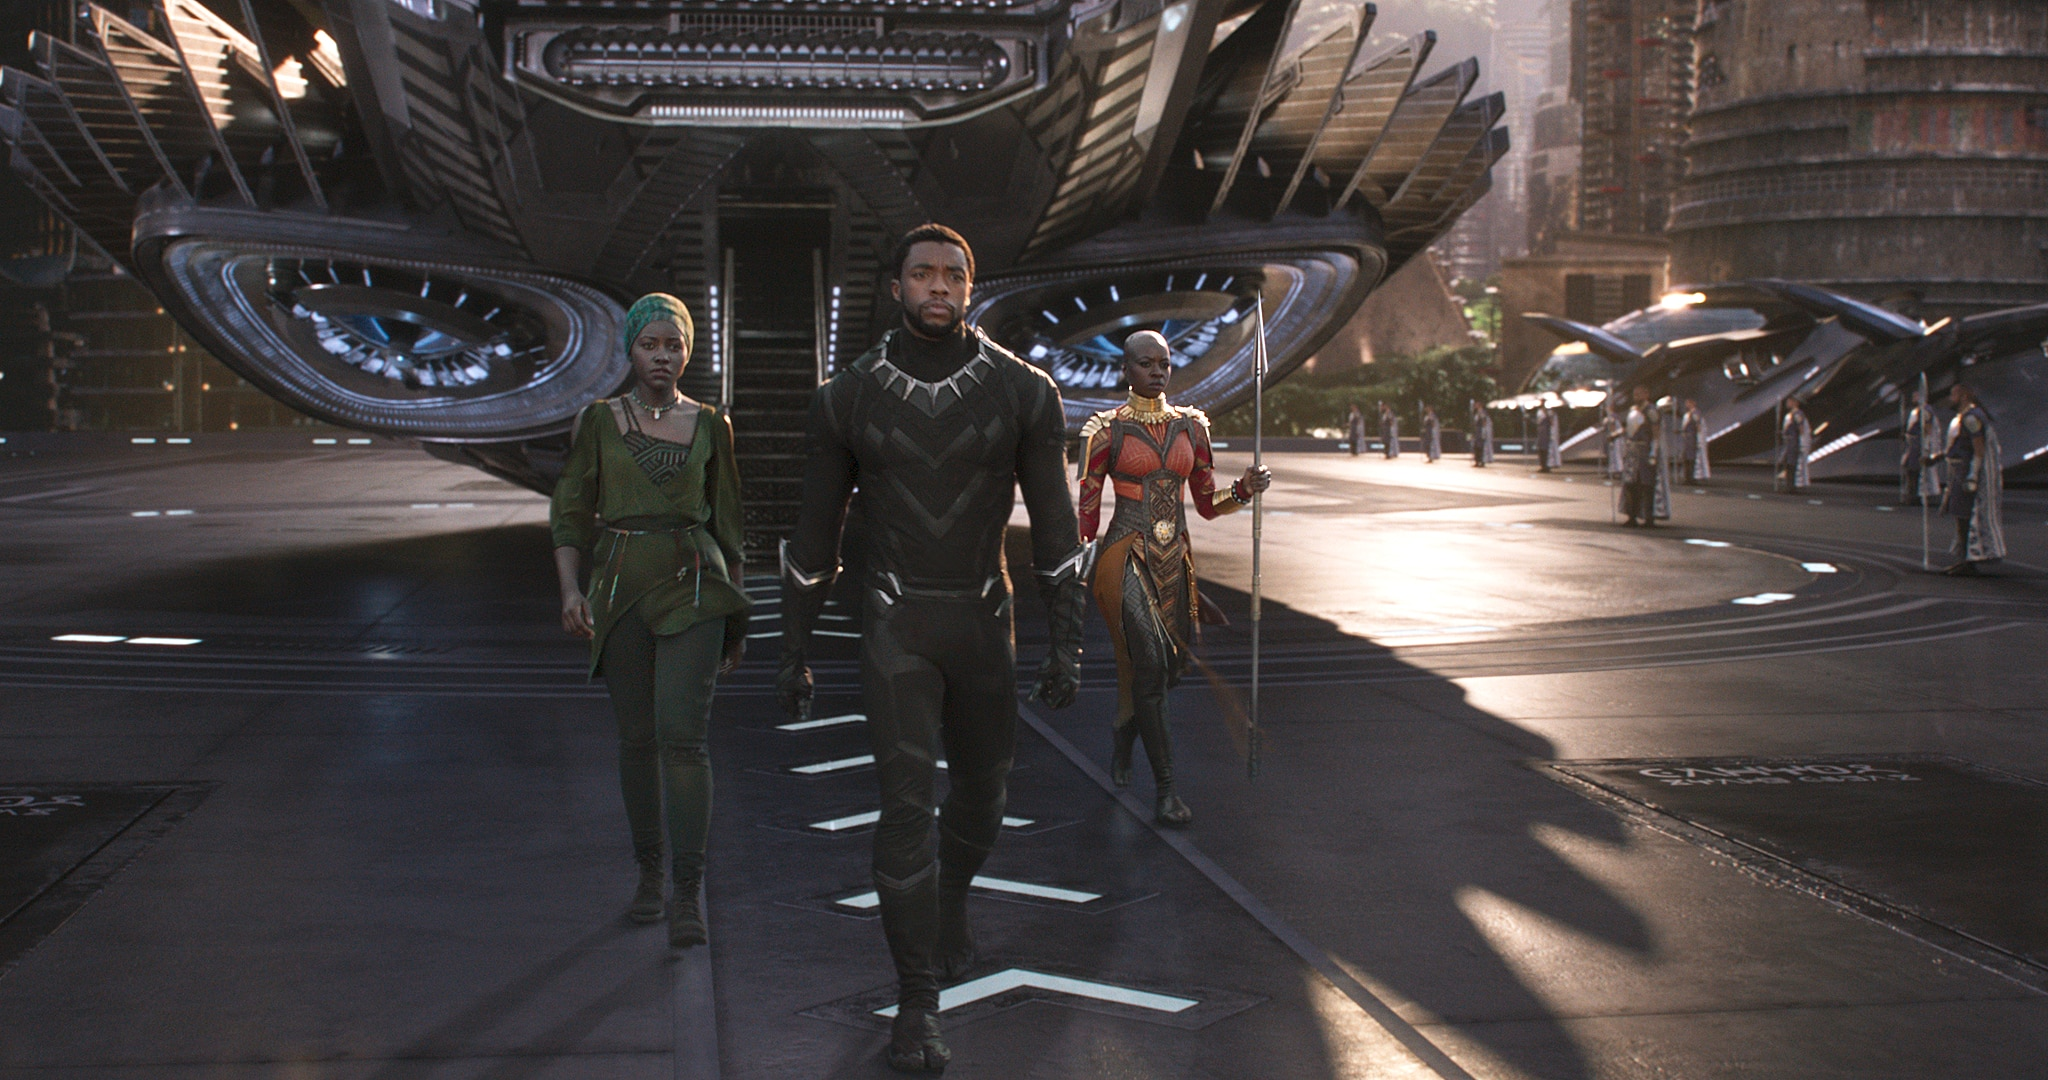 Marvel Studios' BLACK PANTHER - New Featurette! #BlackPanther